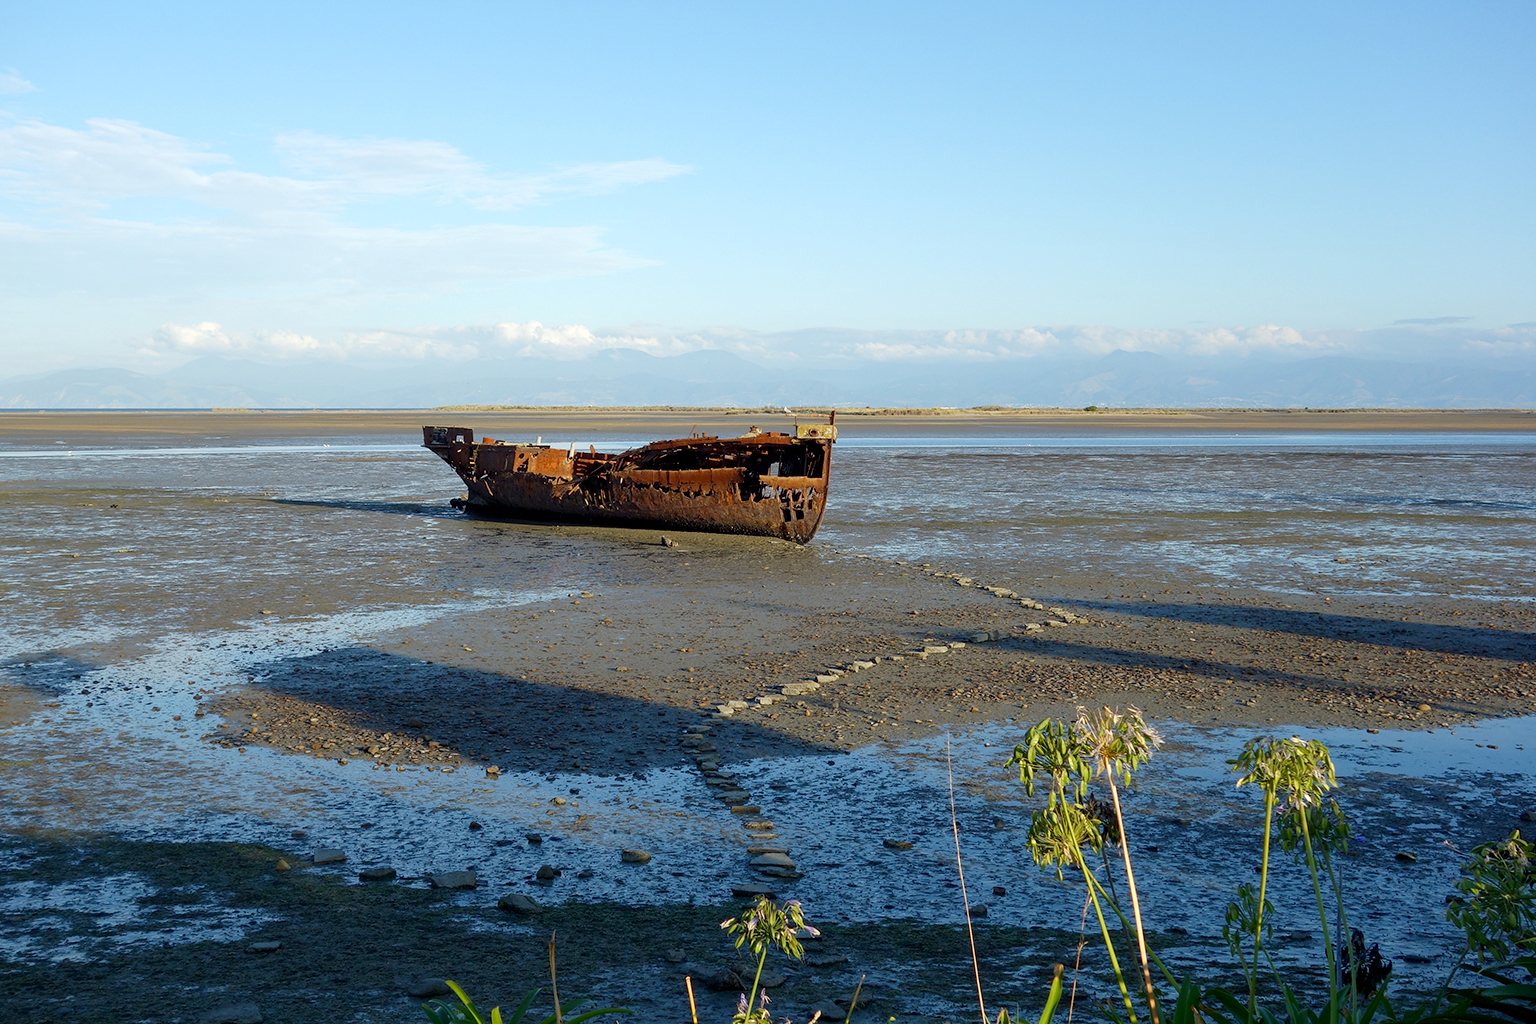 Shipwreck in Motueka, NZ